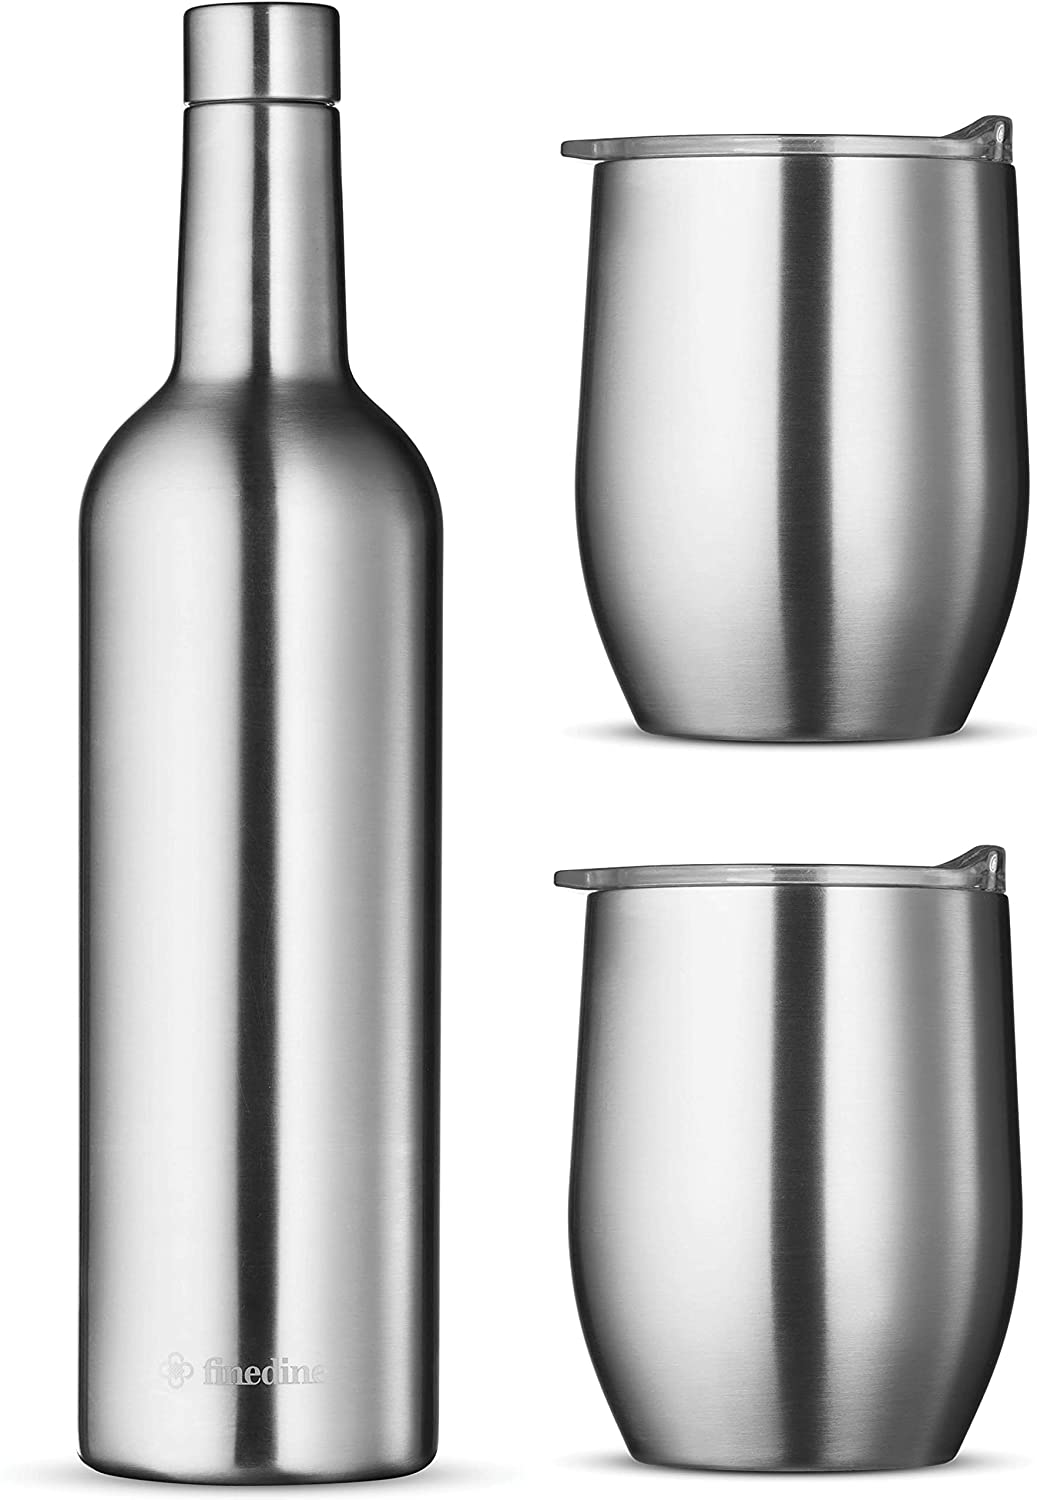 Wine Chiller Gift Set - Vacuum Insulated Wine Bottle 750ml & Two Wine Tumbler With Lids 16oz. Made of Shatter Proof 18/8 Stainless Steel & BPA FREE Lids, Perfect Wine Glasses for Travel, Picnic, Etc.